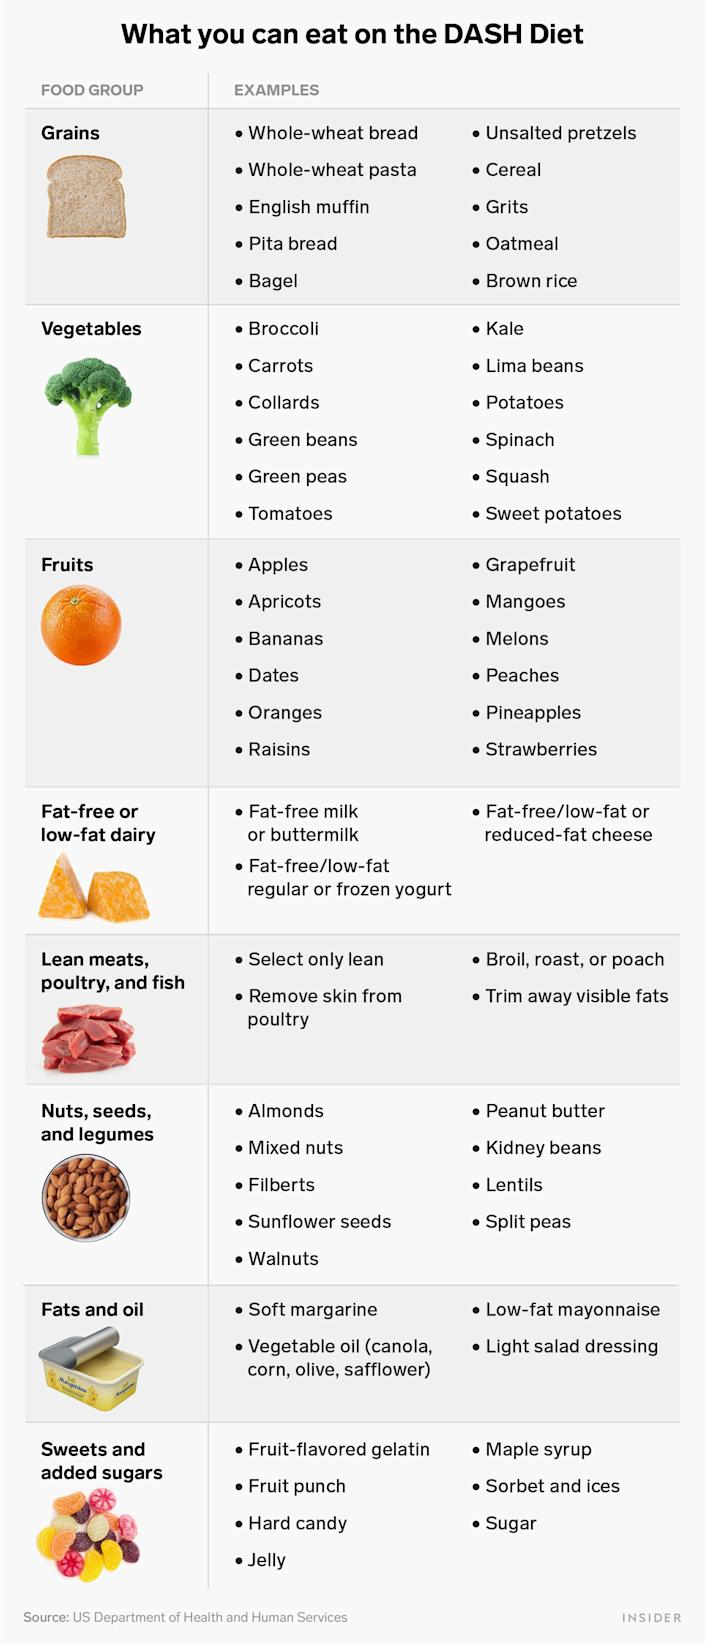 what you can eat on the DASH diet